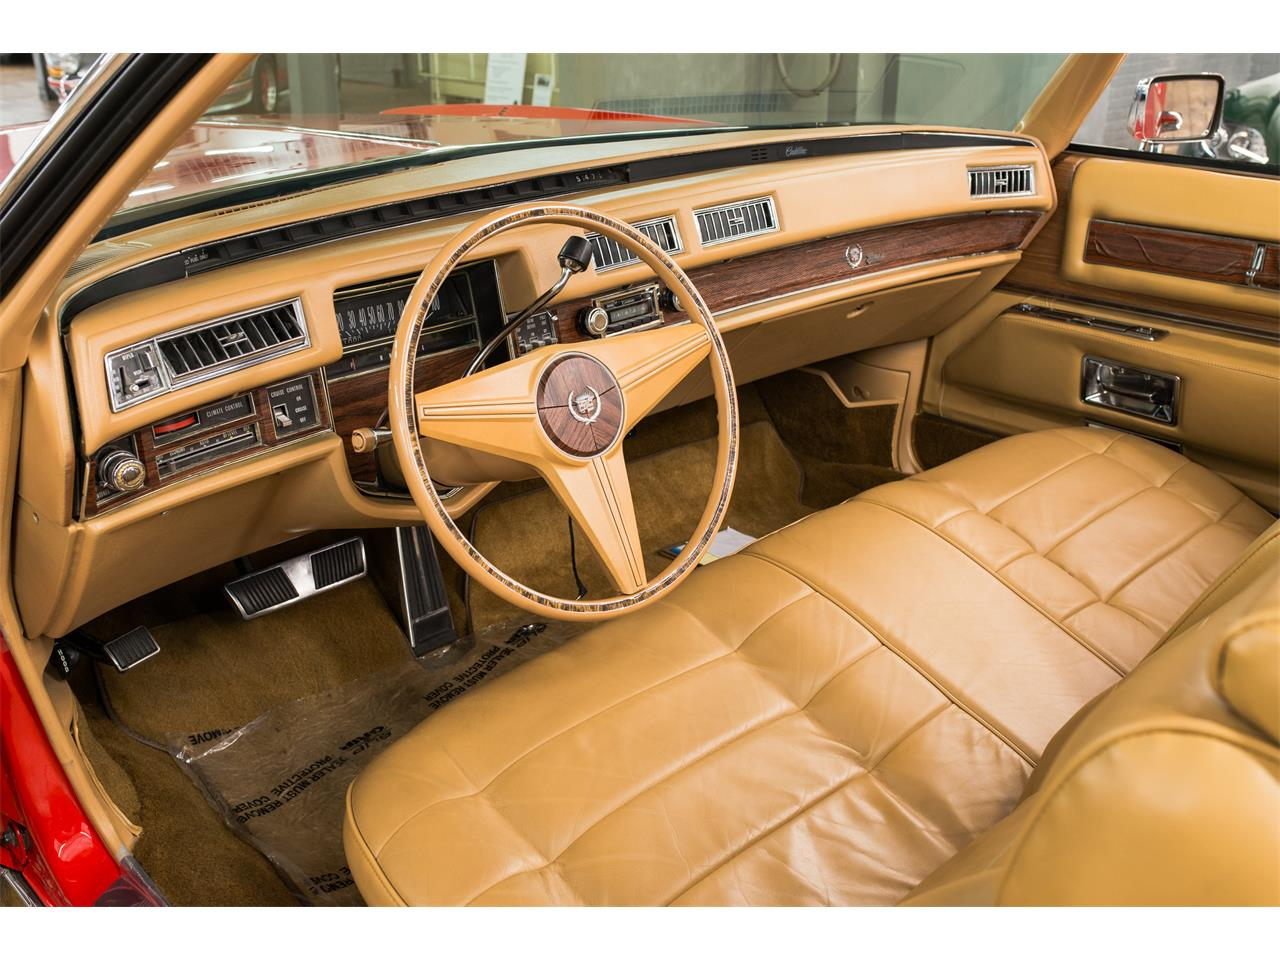 Large Picture of 1976 Cadillac Eldorado located in Connecticut - OAO6